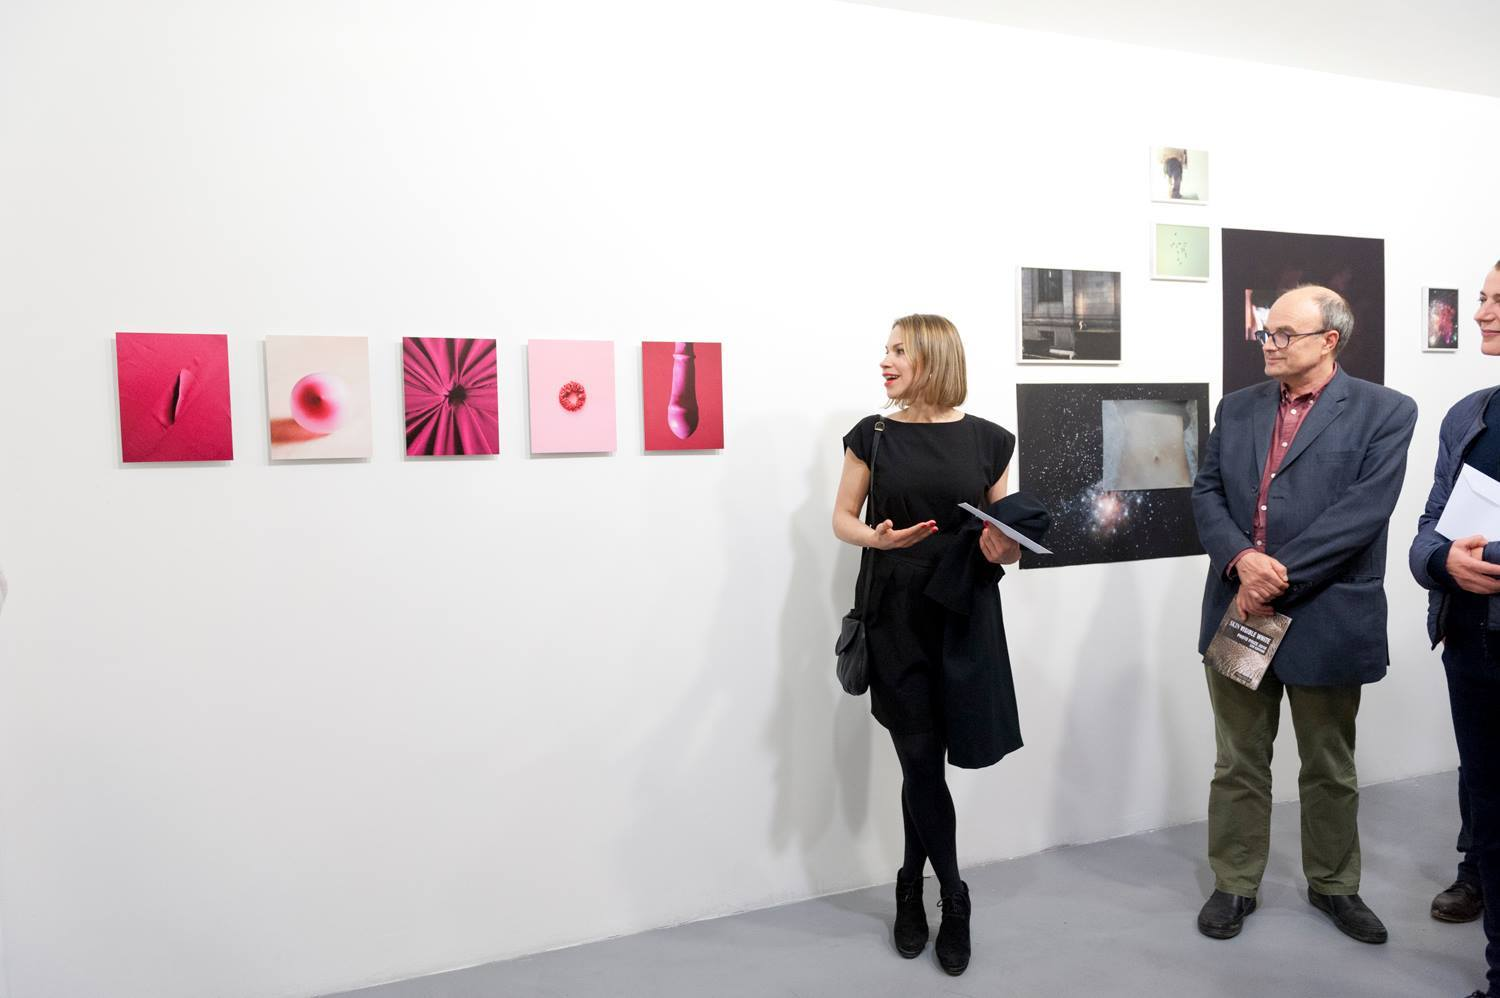 runner-up prize with my series Pink Parts -Thank you Florence! Celeste Network and Studio Marangoni!